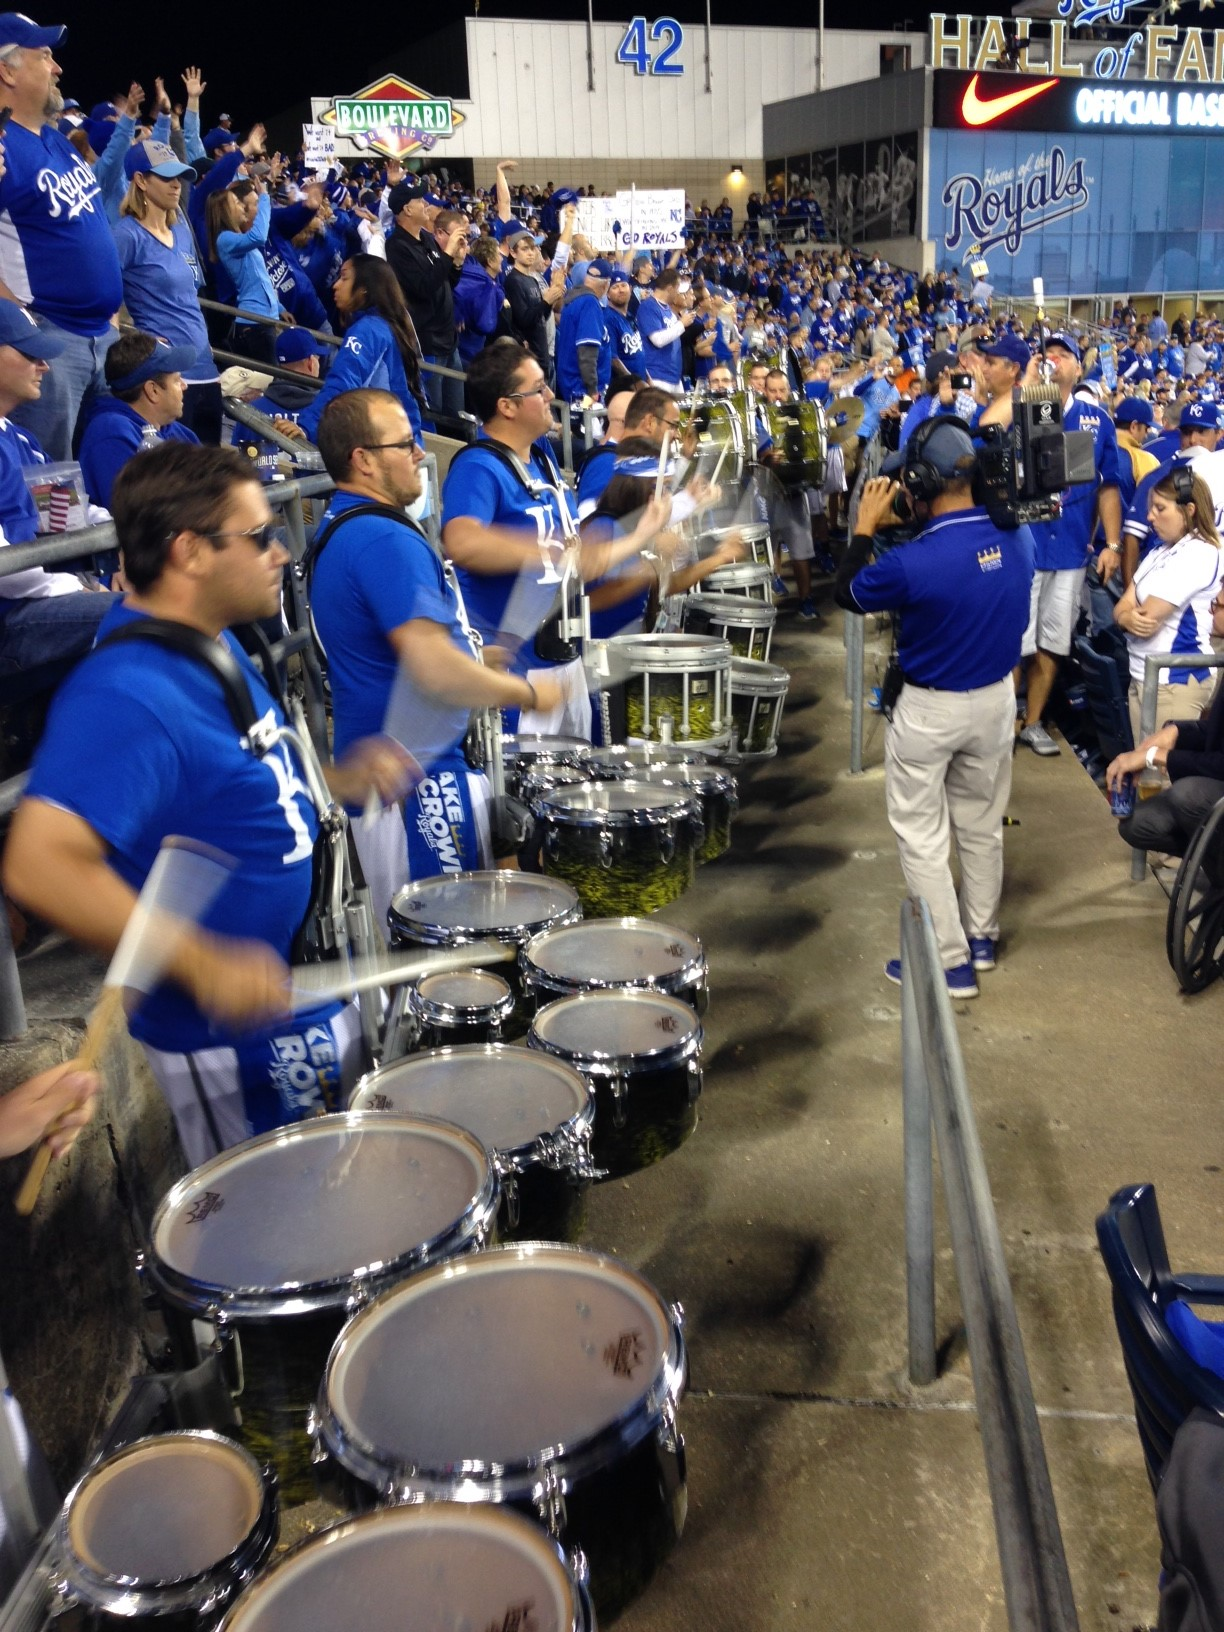 Drumline headed to Kansas City for American League series